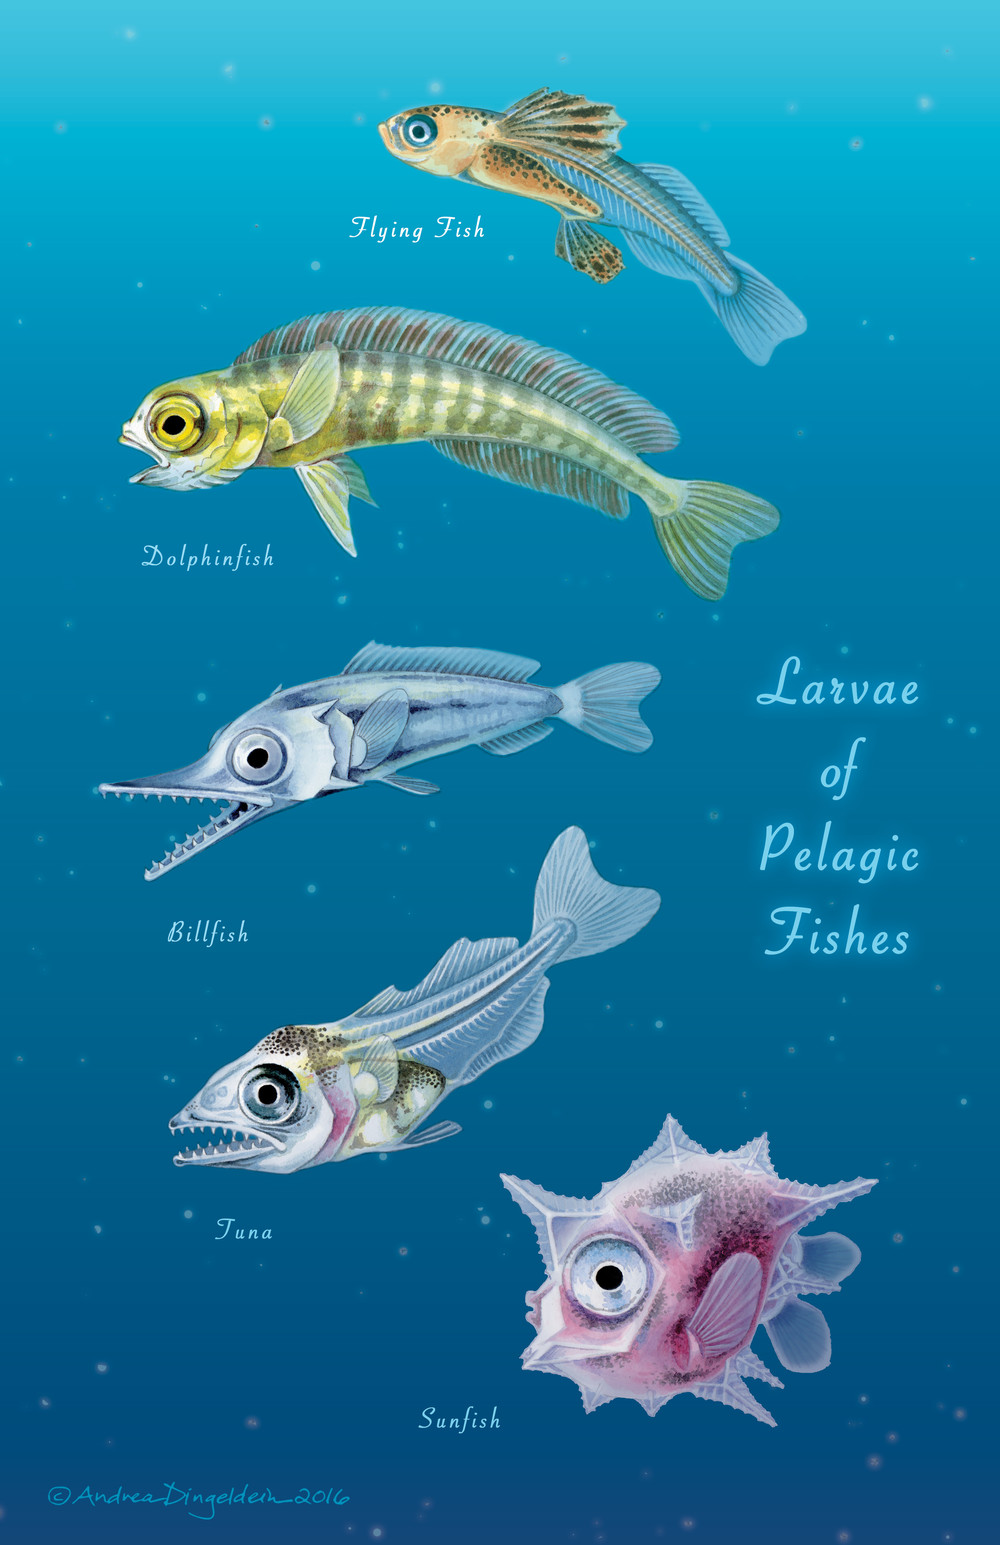 Larvae of Pelagic Fishes